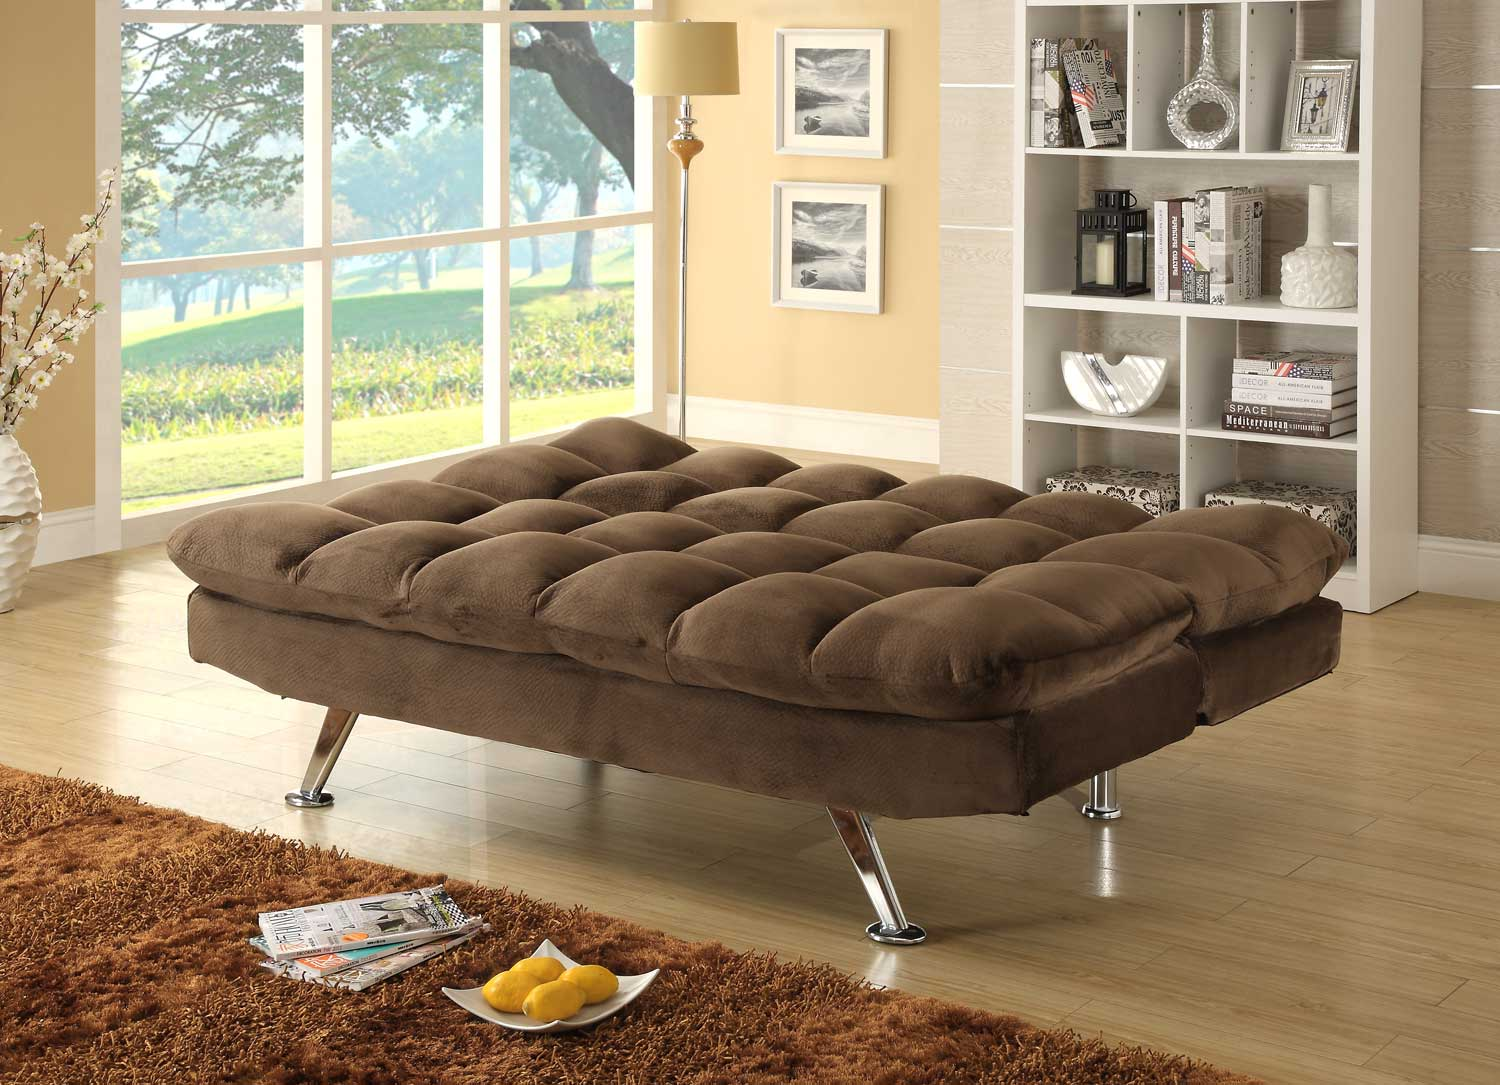 futon click clack sofa bed. Black Bedroom Furniture Sets. Home Design Ideas